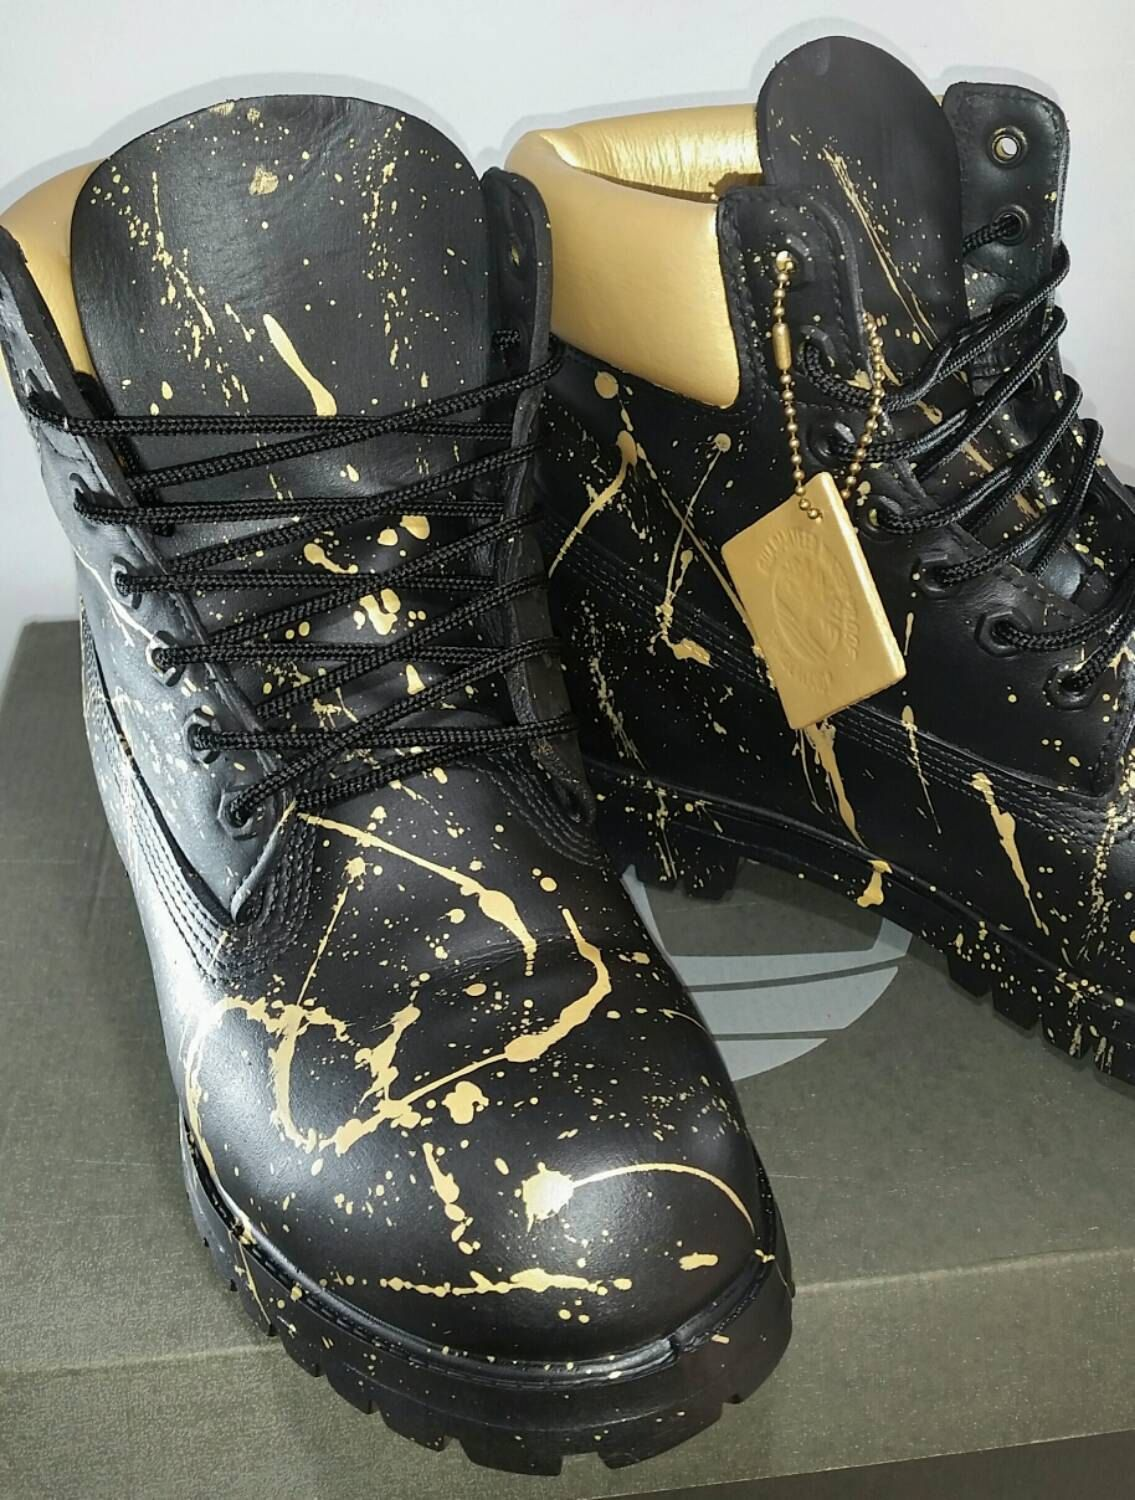 Custom Black and Gold 24K Timberland Boots- Hand Painted Timberlands-  Custom Timberlands- Men Woman Kids Timberlands by DivineUnlimited on Etsy 39bc30cbc4ce